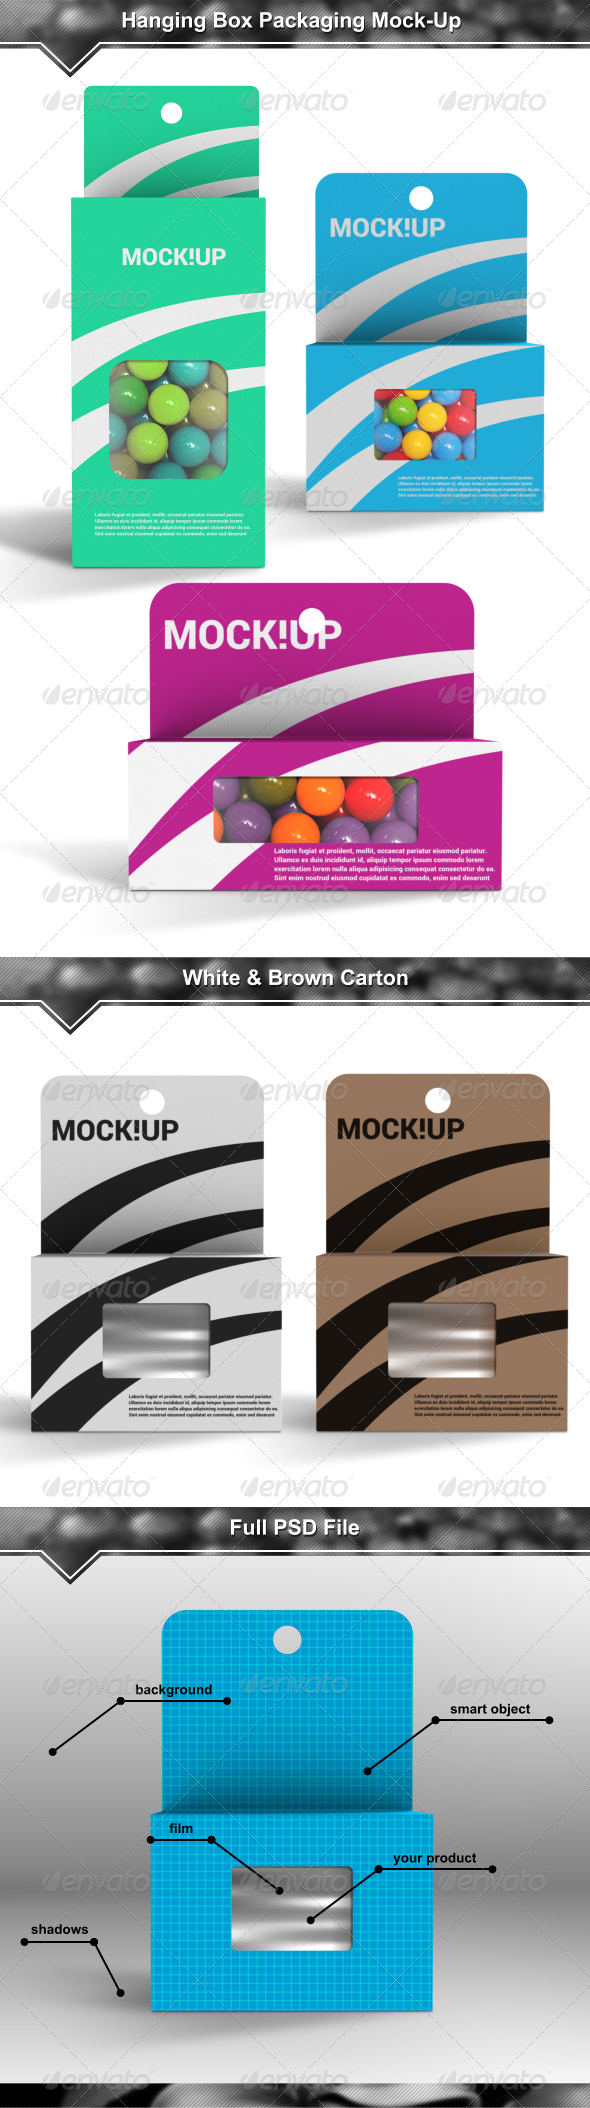 Hanging Box Packaging Mock-Up